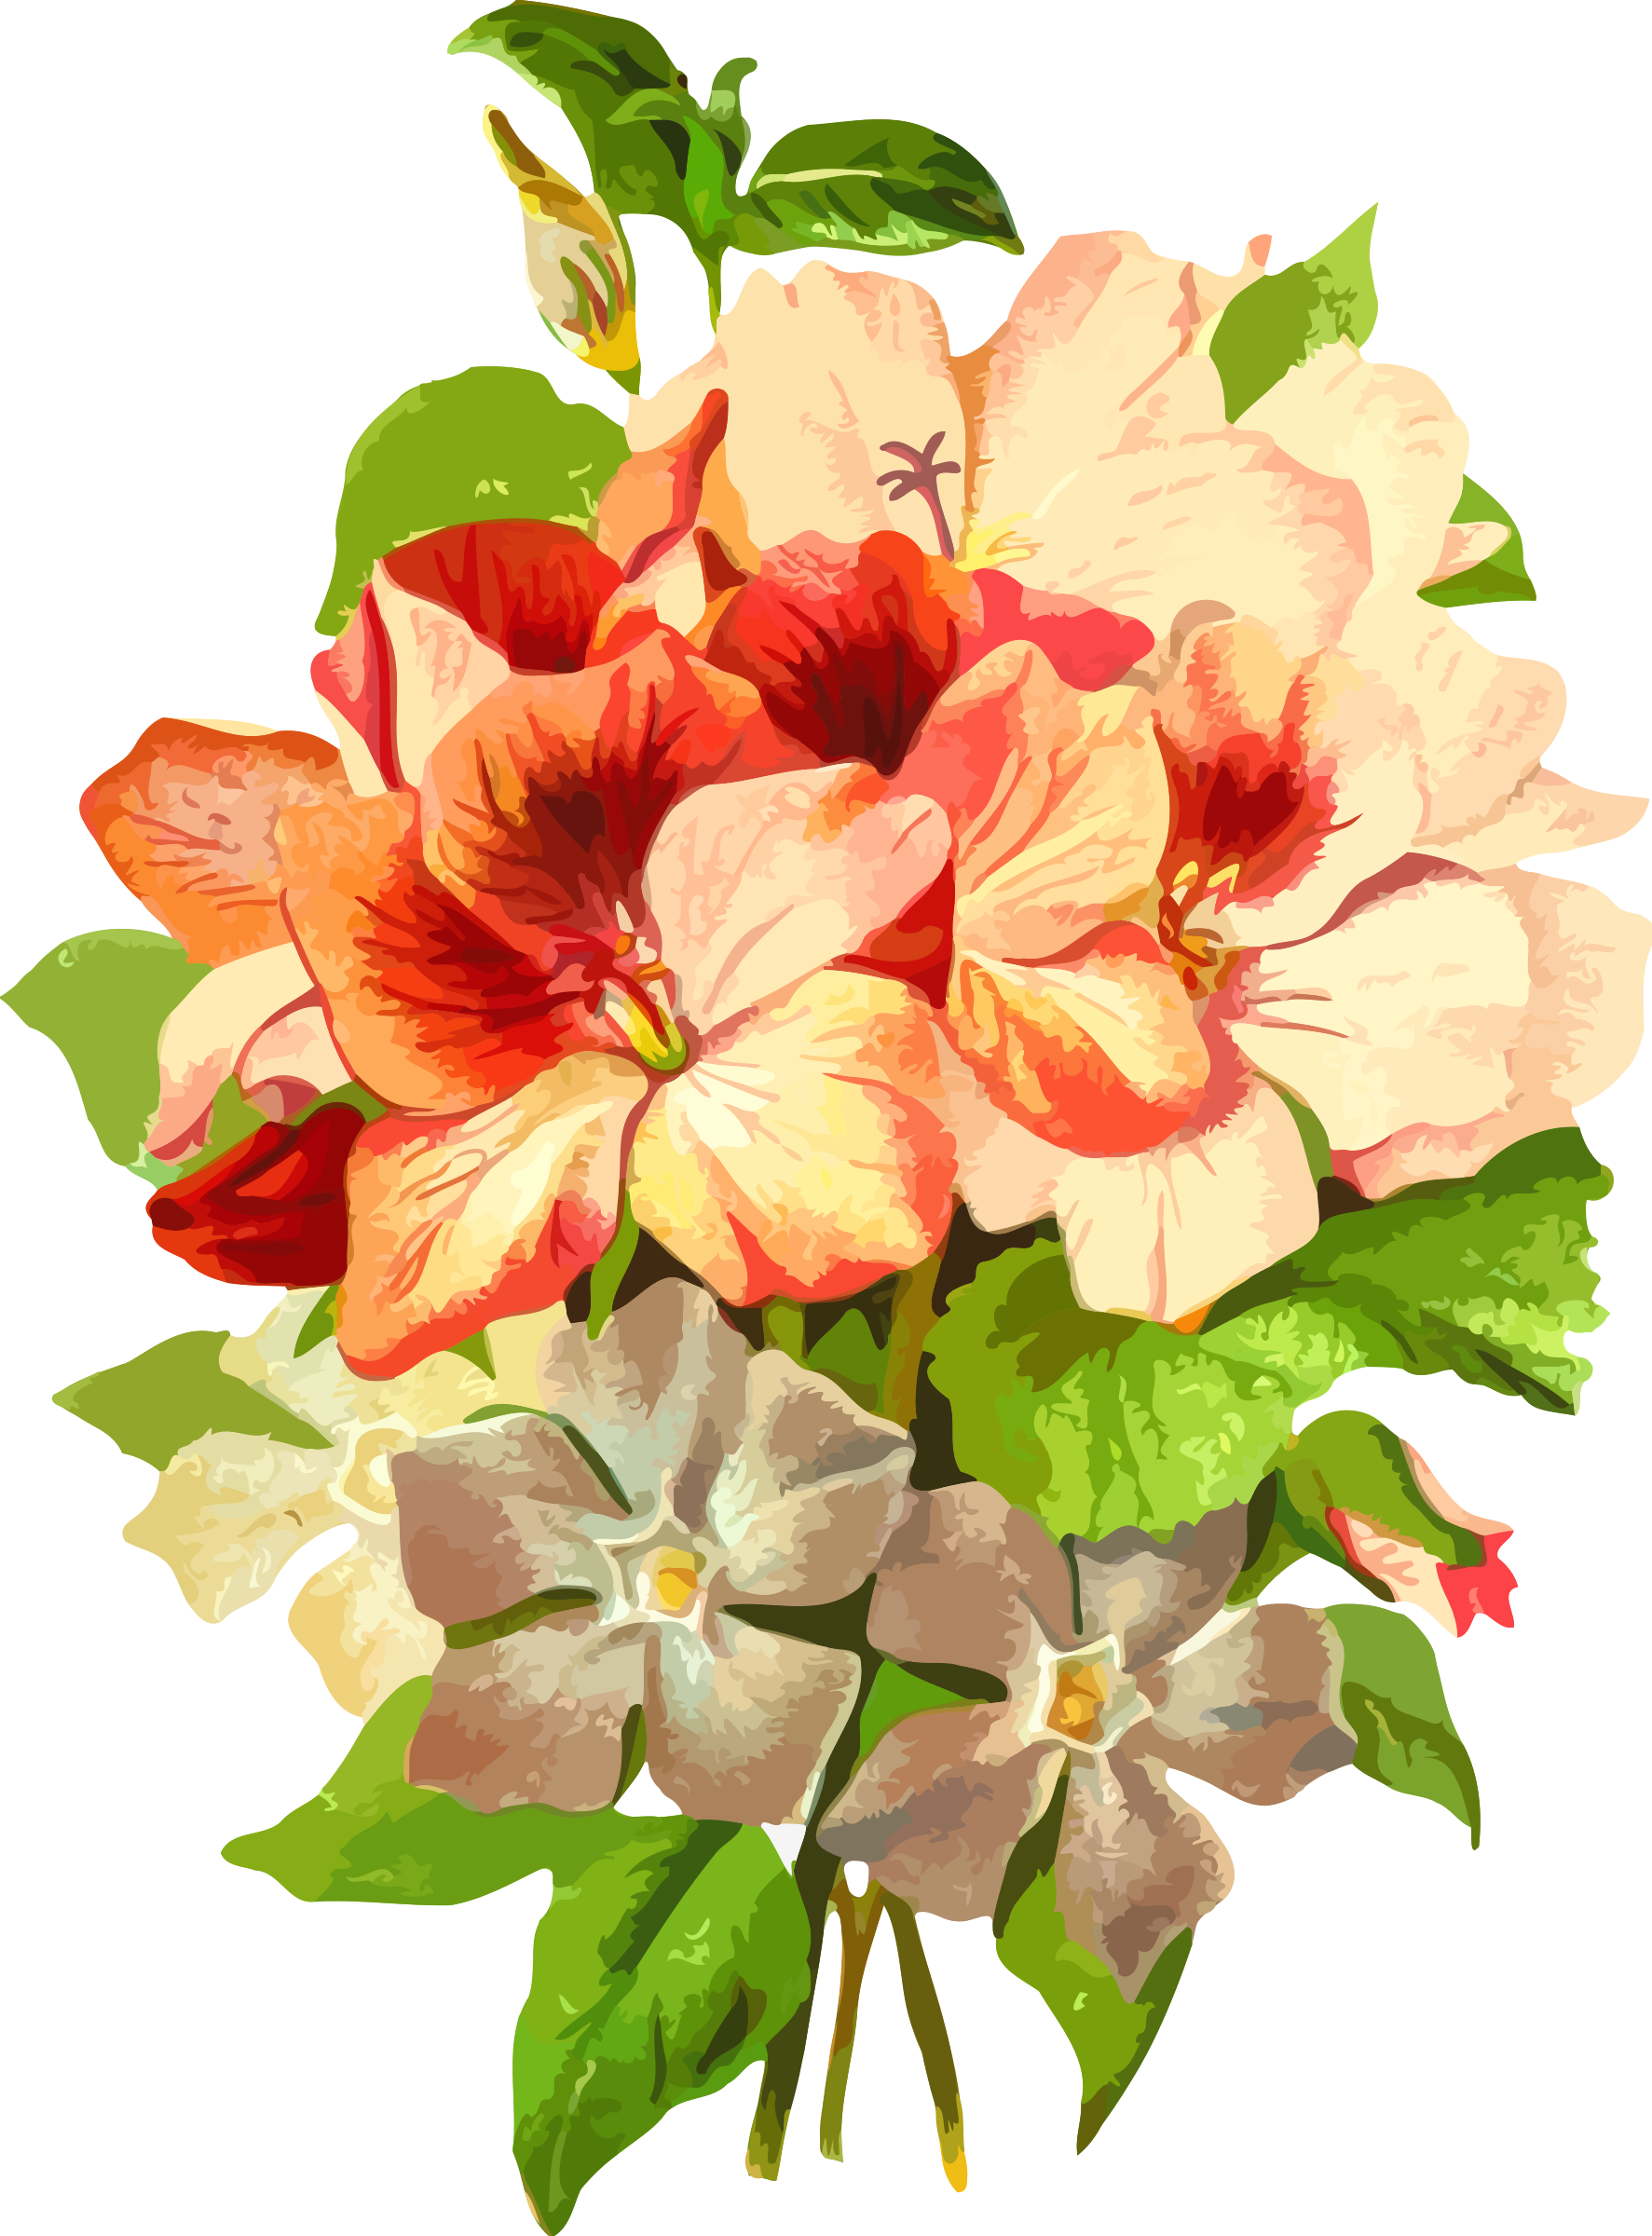 Pelargonium by Firkin